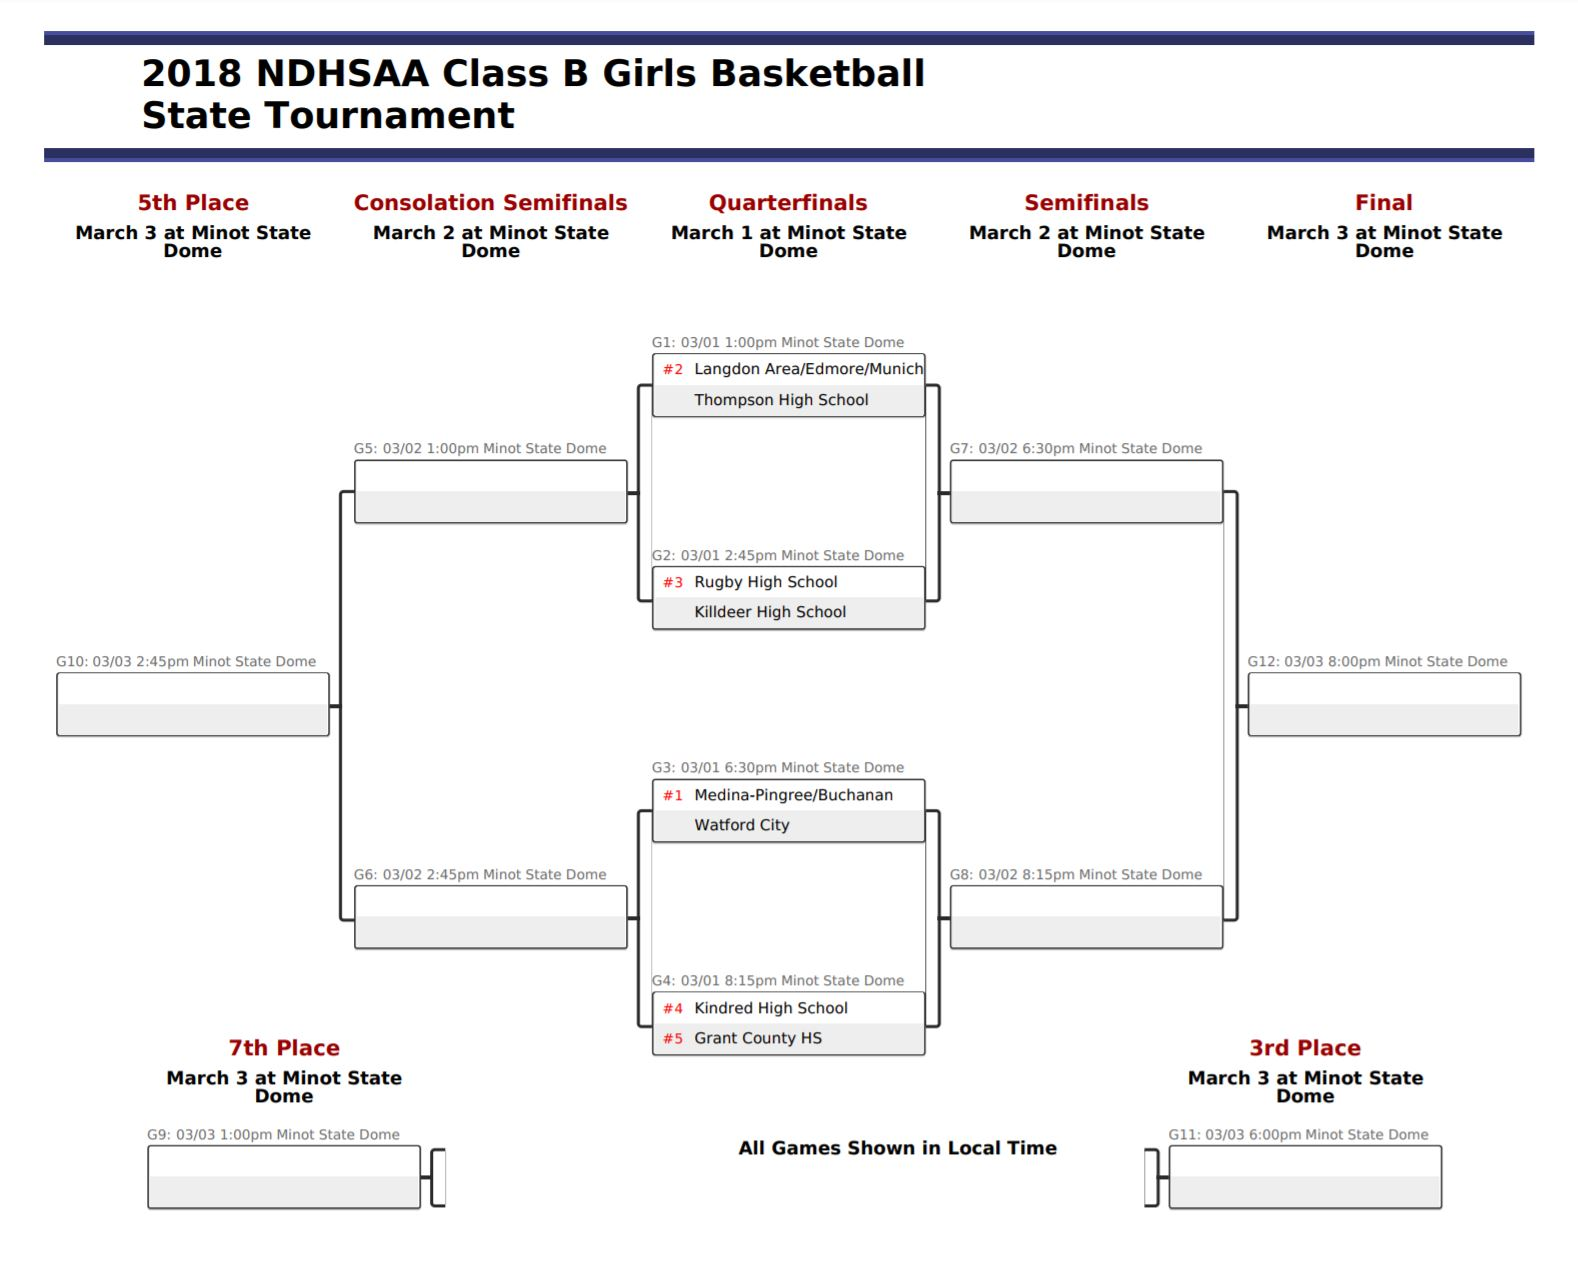 2018 NDHSAA Class B Girls Basketball State Tournament Bracket